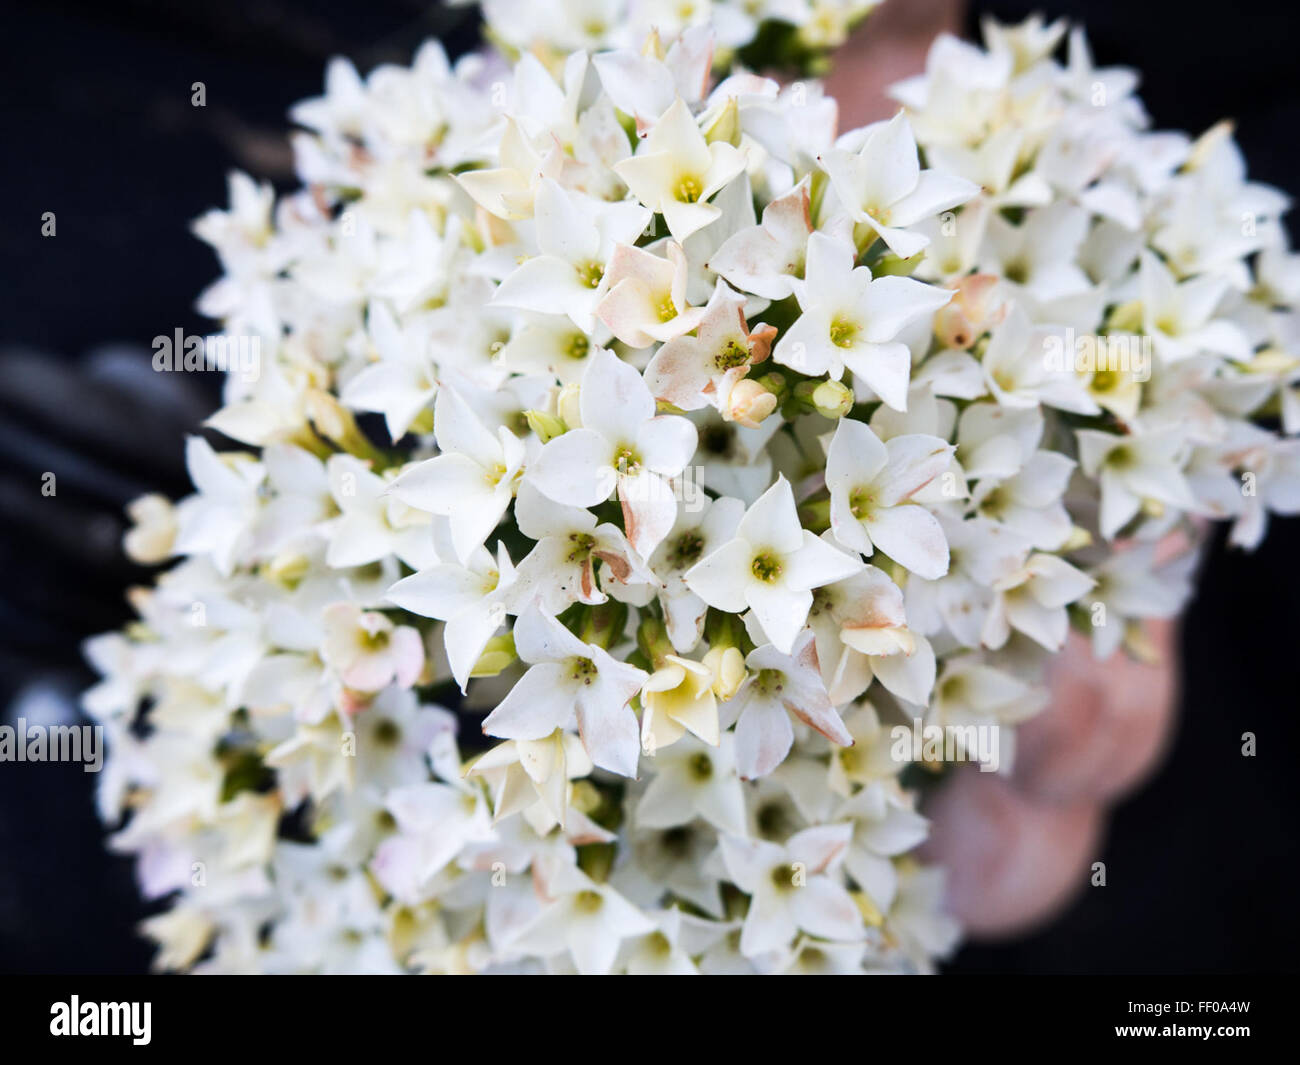 Bunch of small white flowers bunch of small white flower stock photo bunch of small white flowers bunch of small white flower mightylinksfo